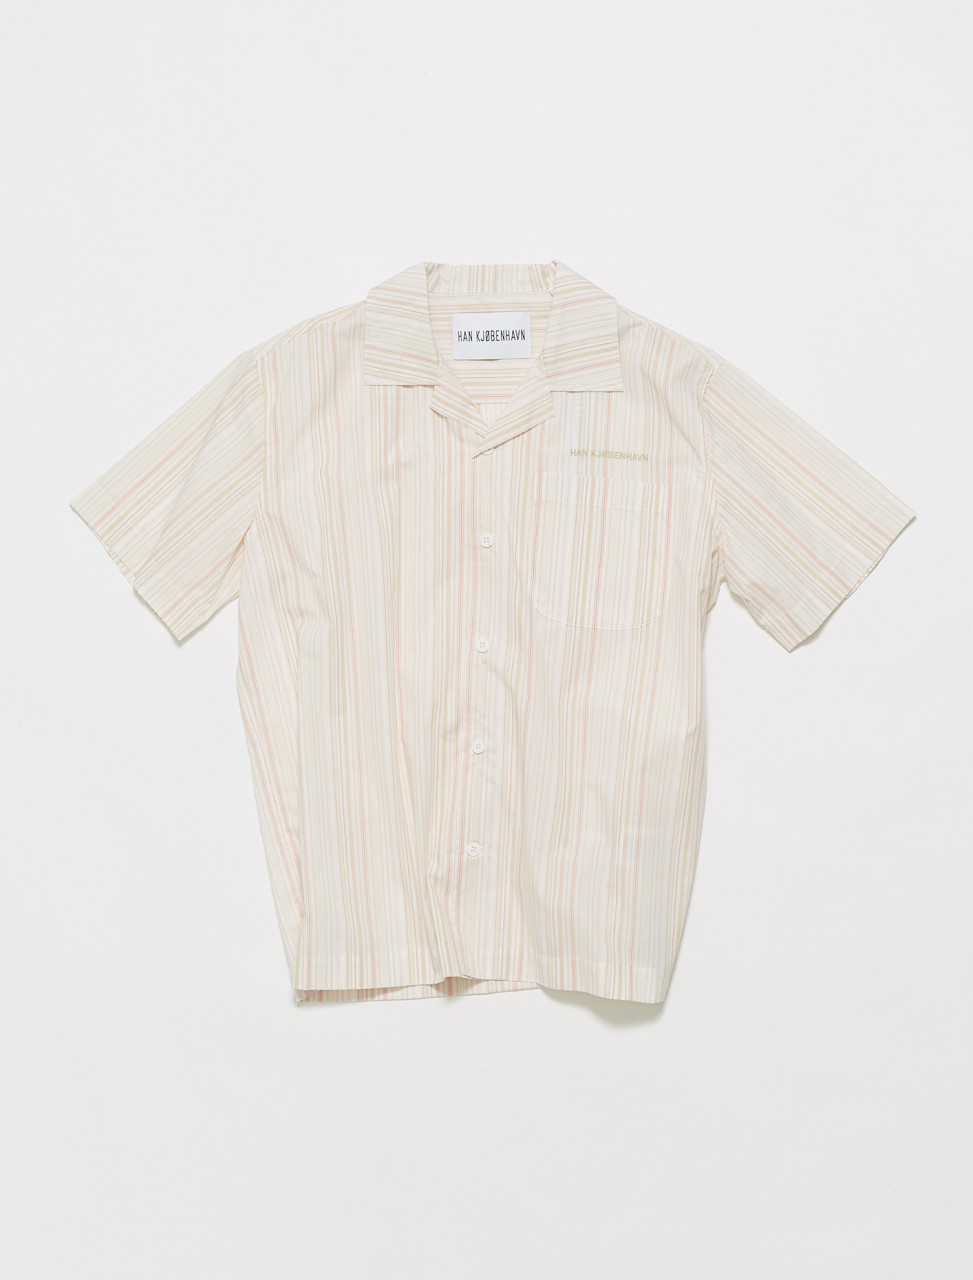 324-M-130047HAN KJØBENHAVN SUMMER SHIRT SUN STRIPED